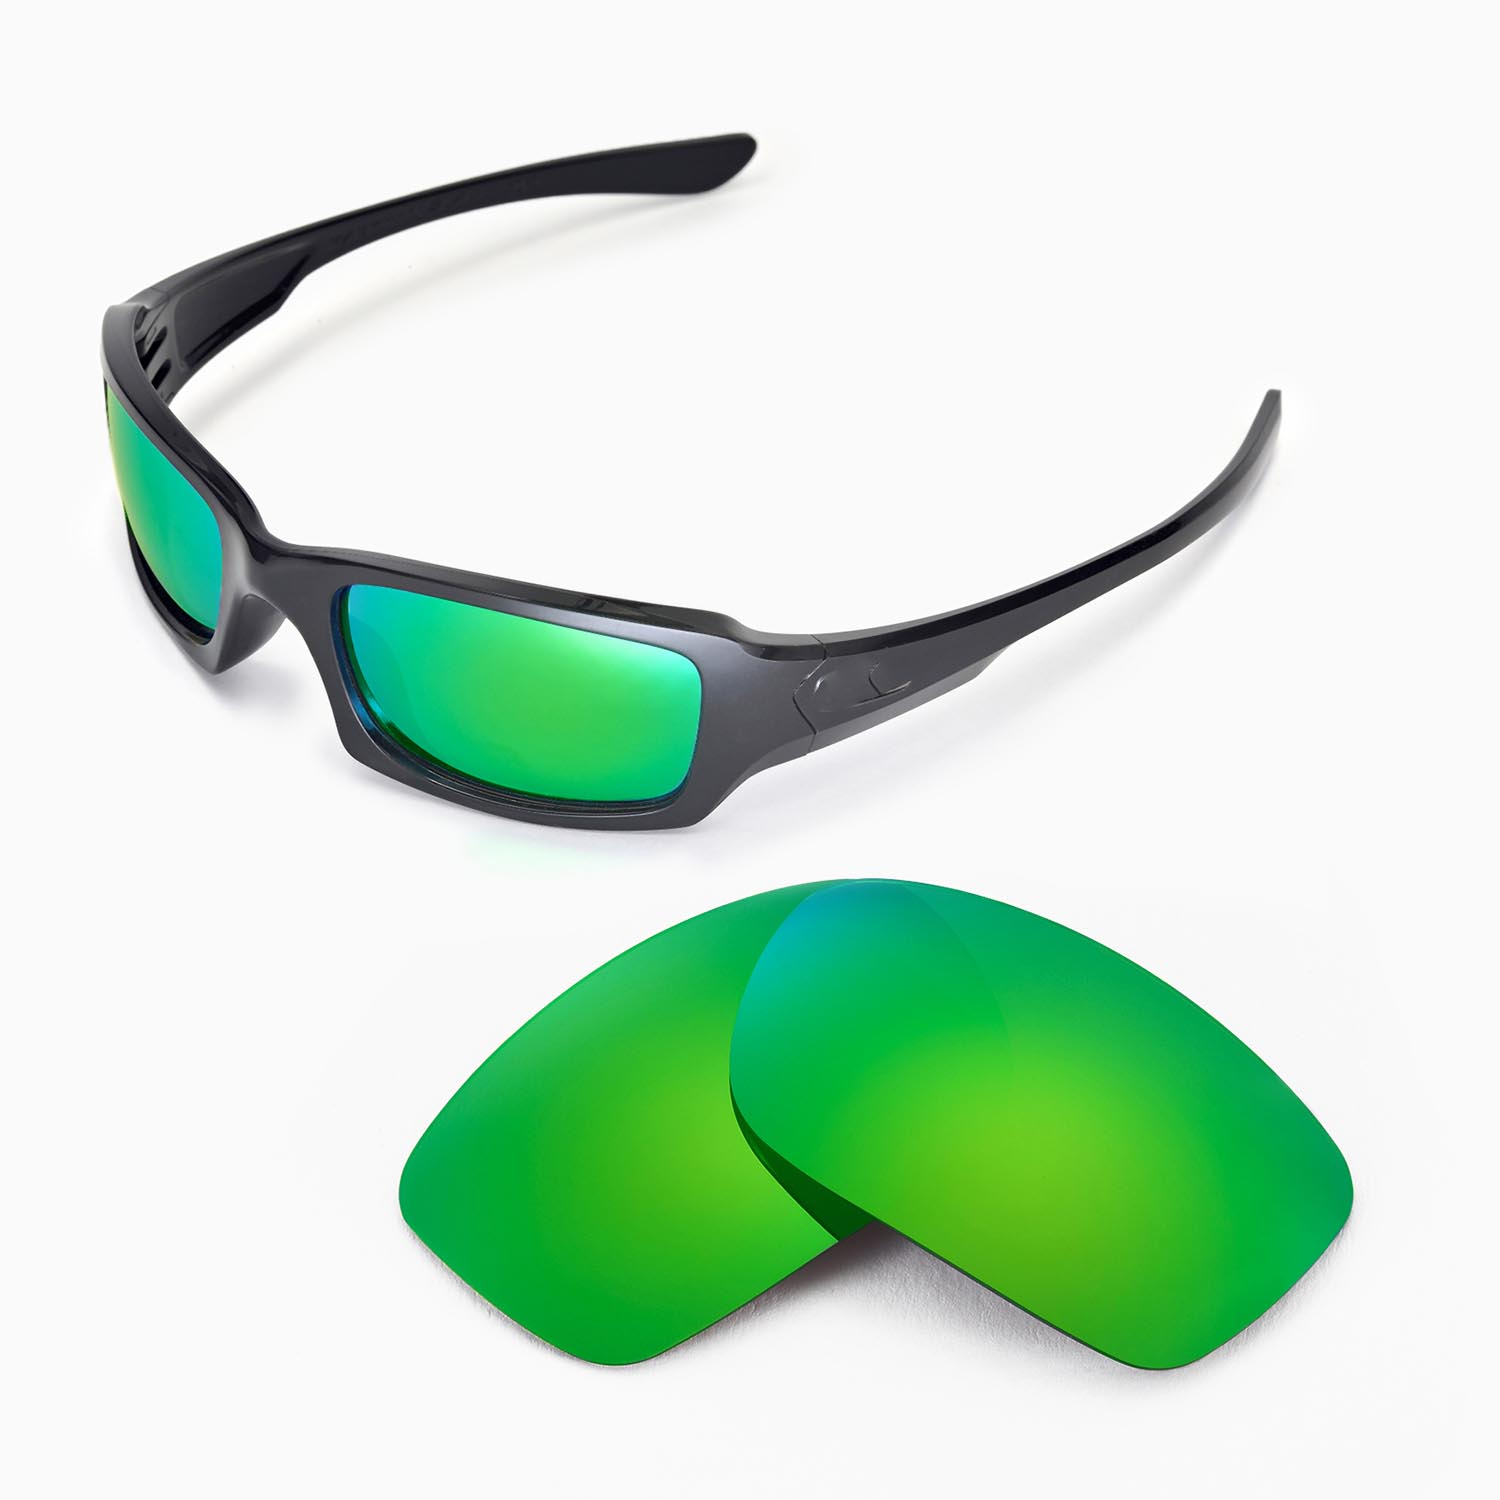 435a0527d0 Details about New WL Polarized Emerald Replacement Lenses For Oakley Fives  Squared Sunglasses